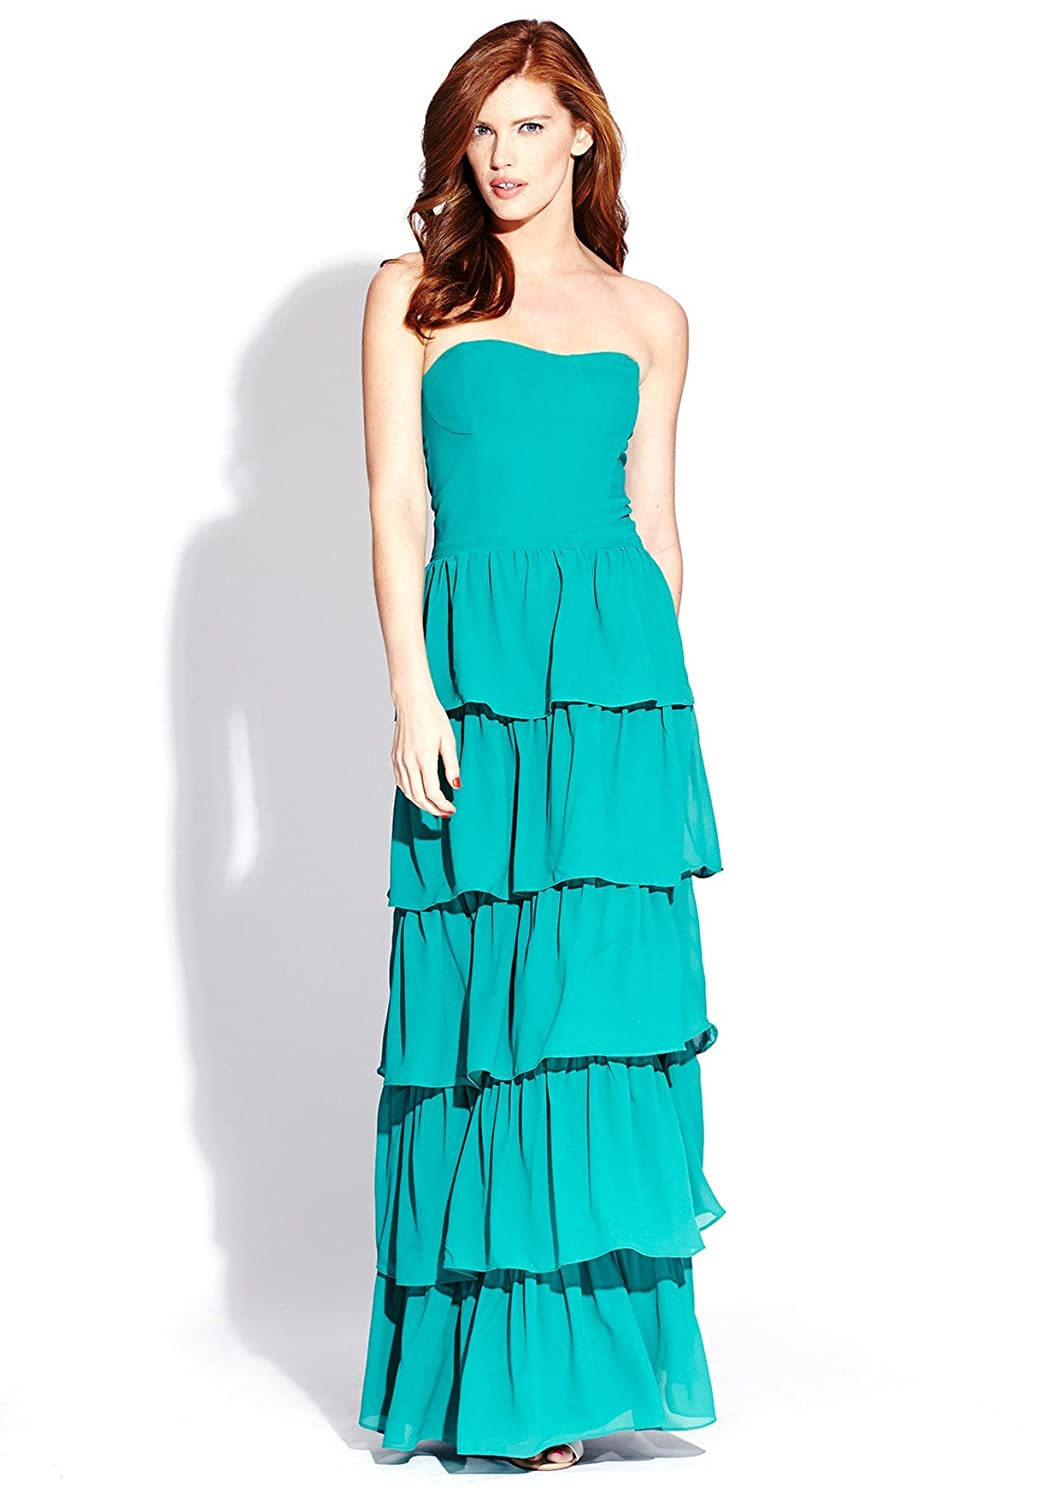 ISABEL LU Strapless Maxi Dress Jade M